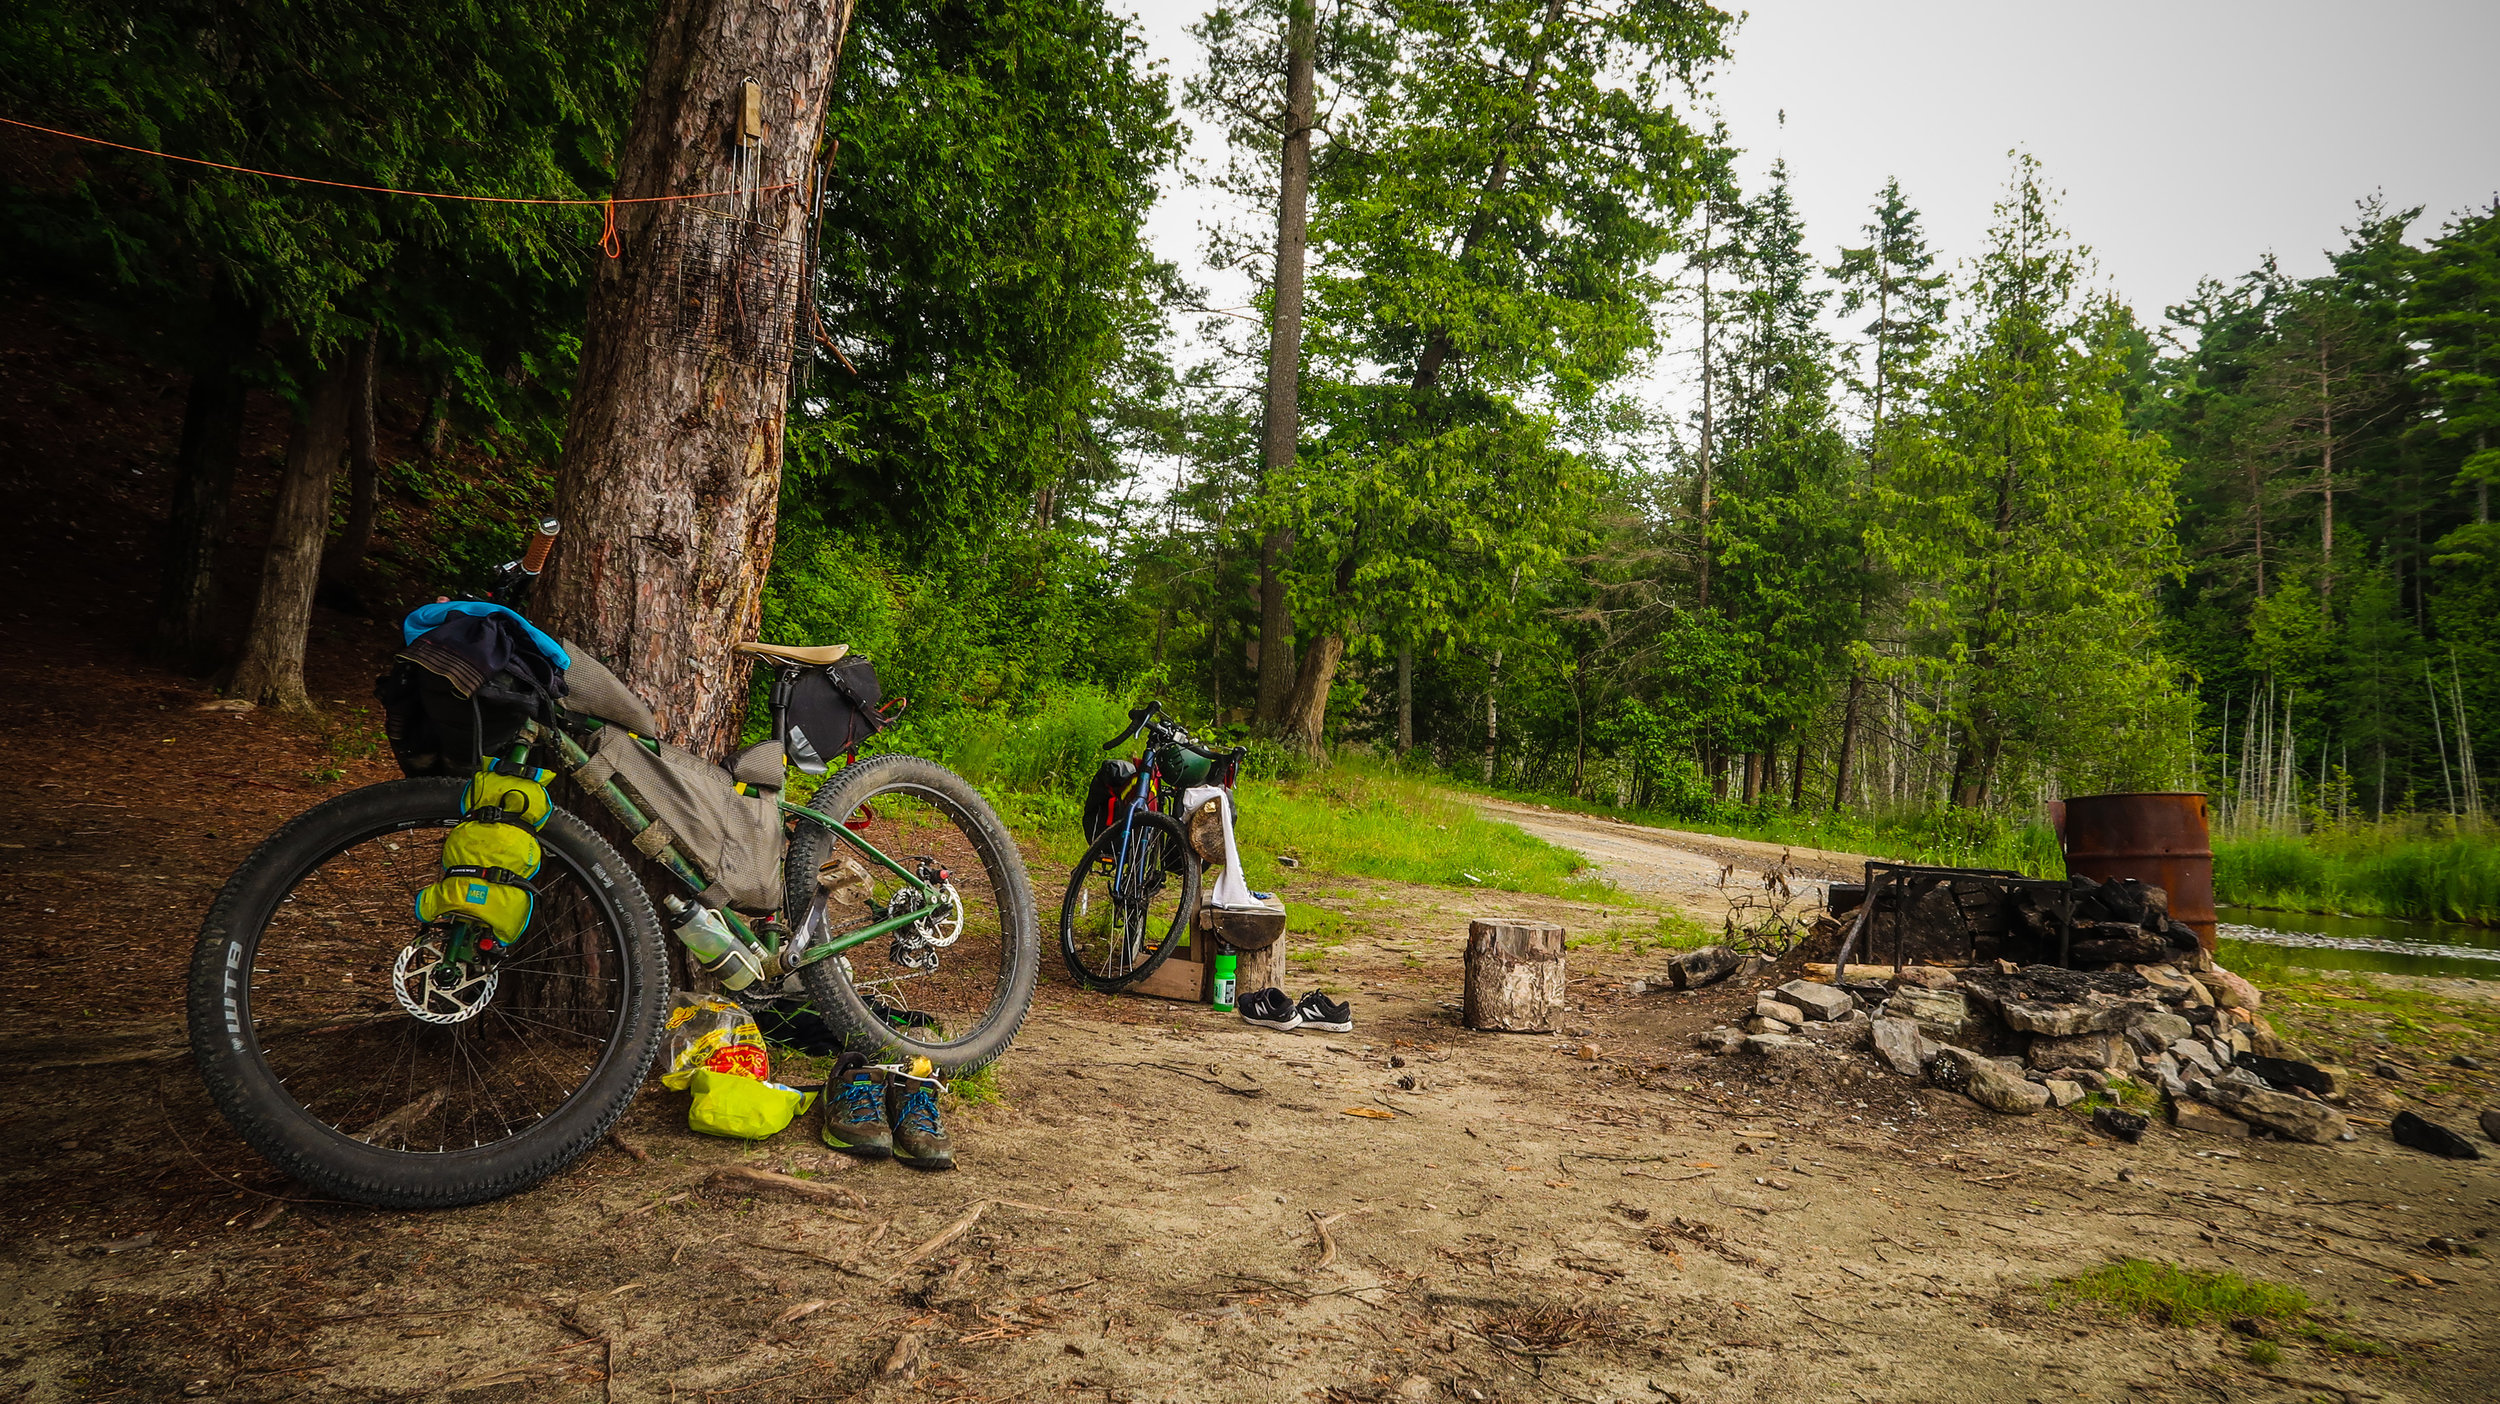 This roadside Crown land campsite at Dodge Lake is a great place to refill on water and have a quick swim. It might not be the best campsite though.